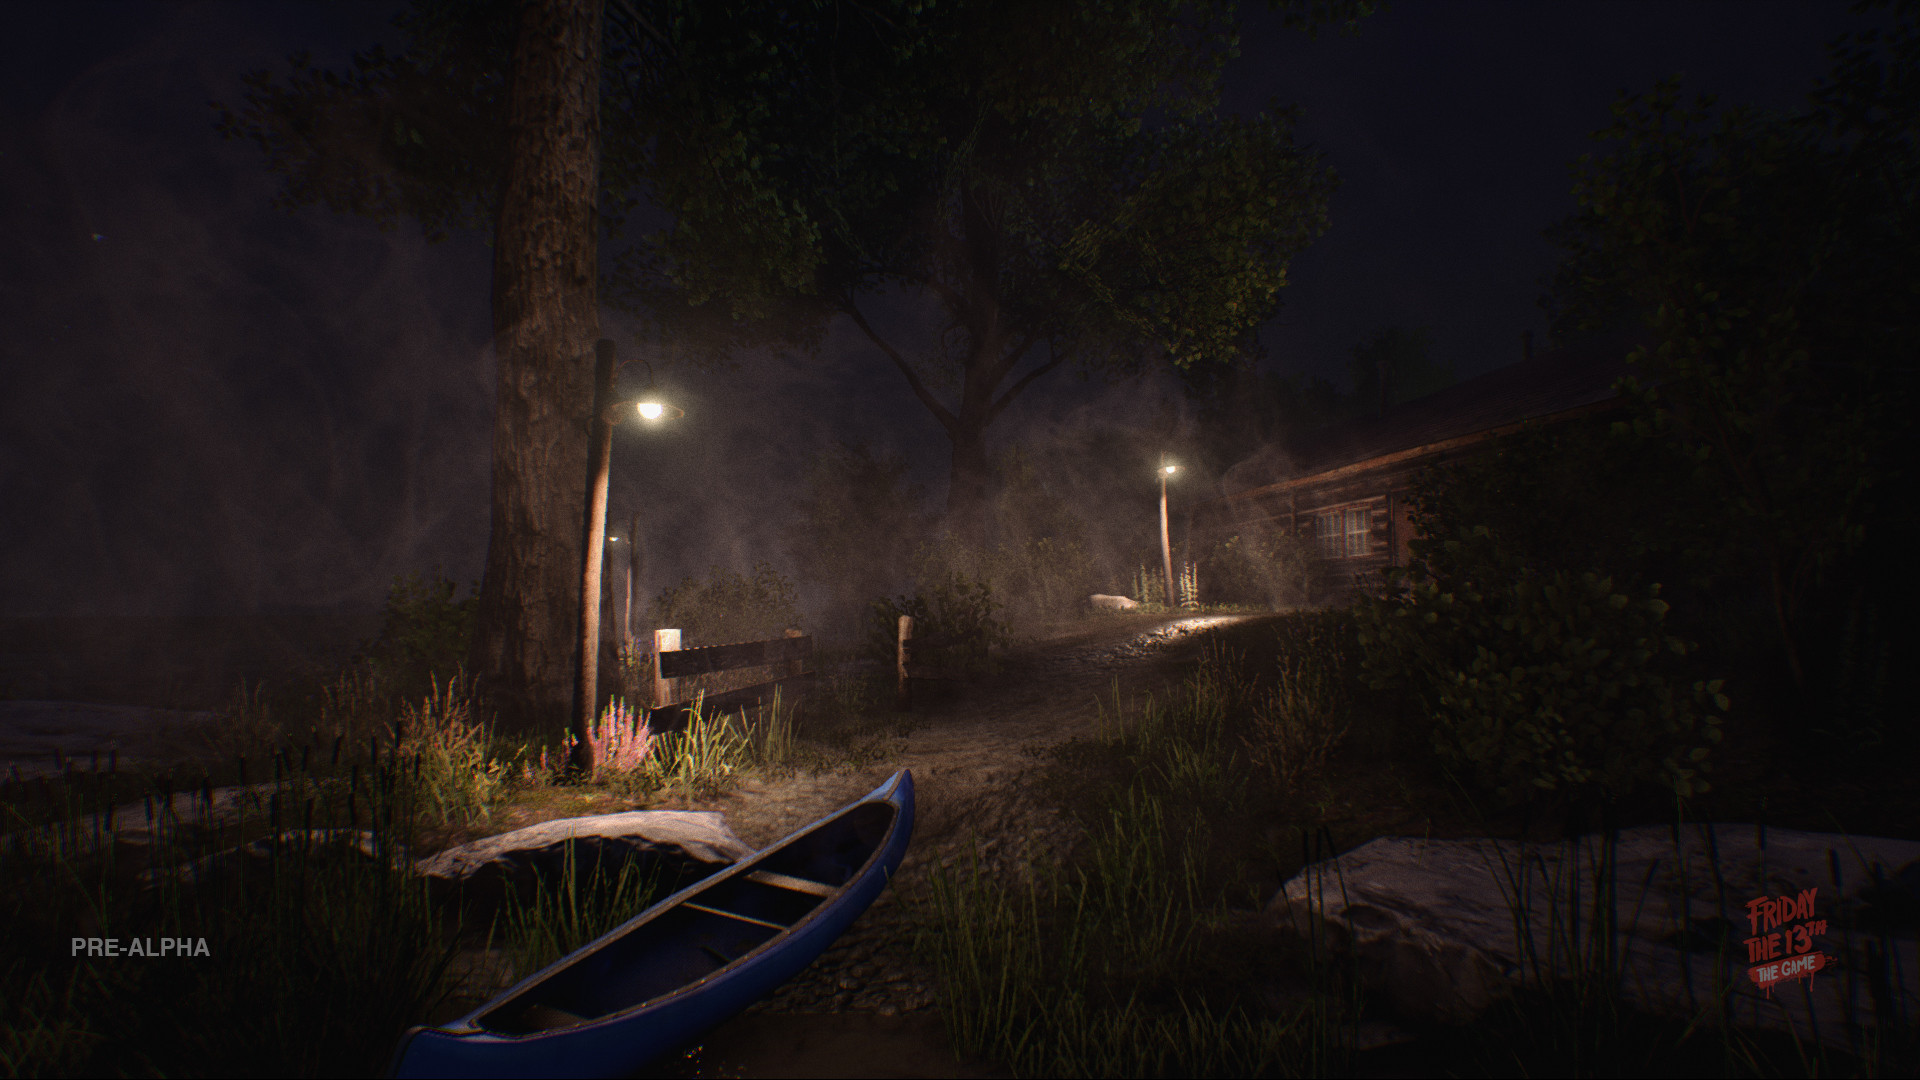 Friday The 13th: The Game #13